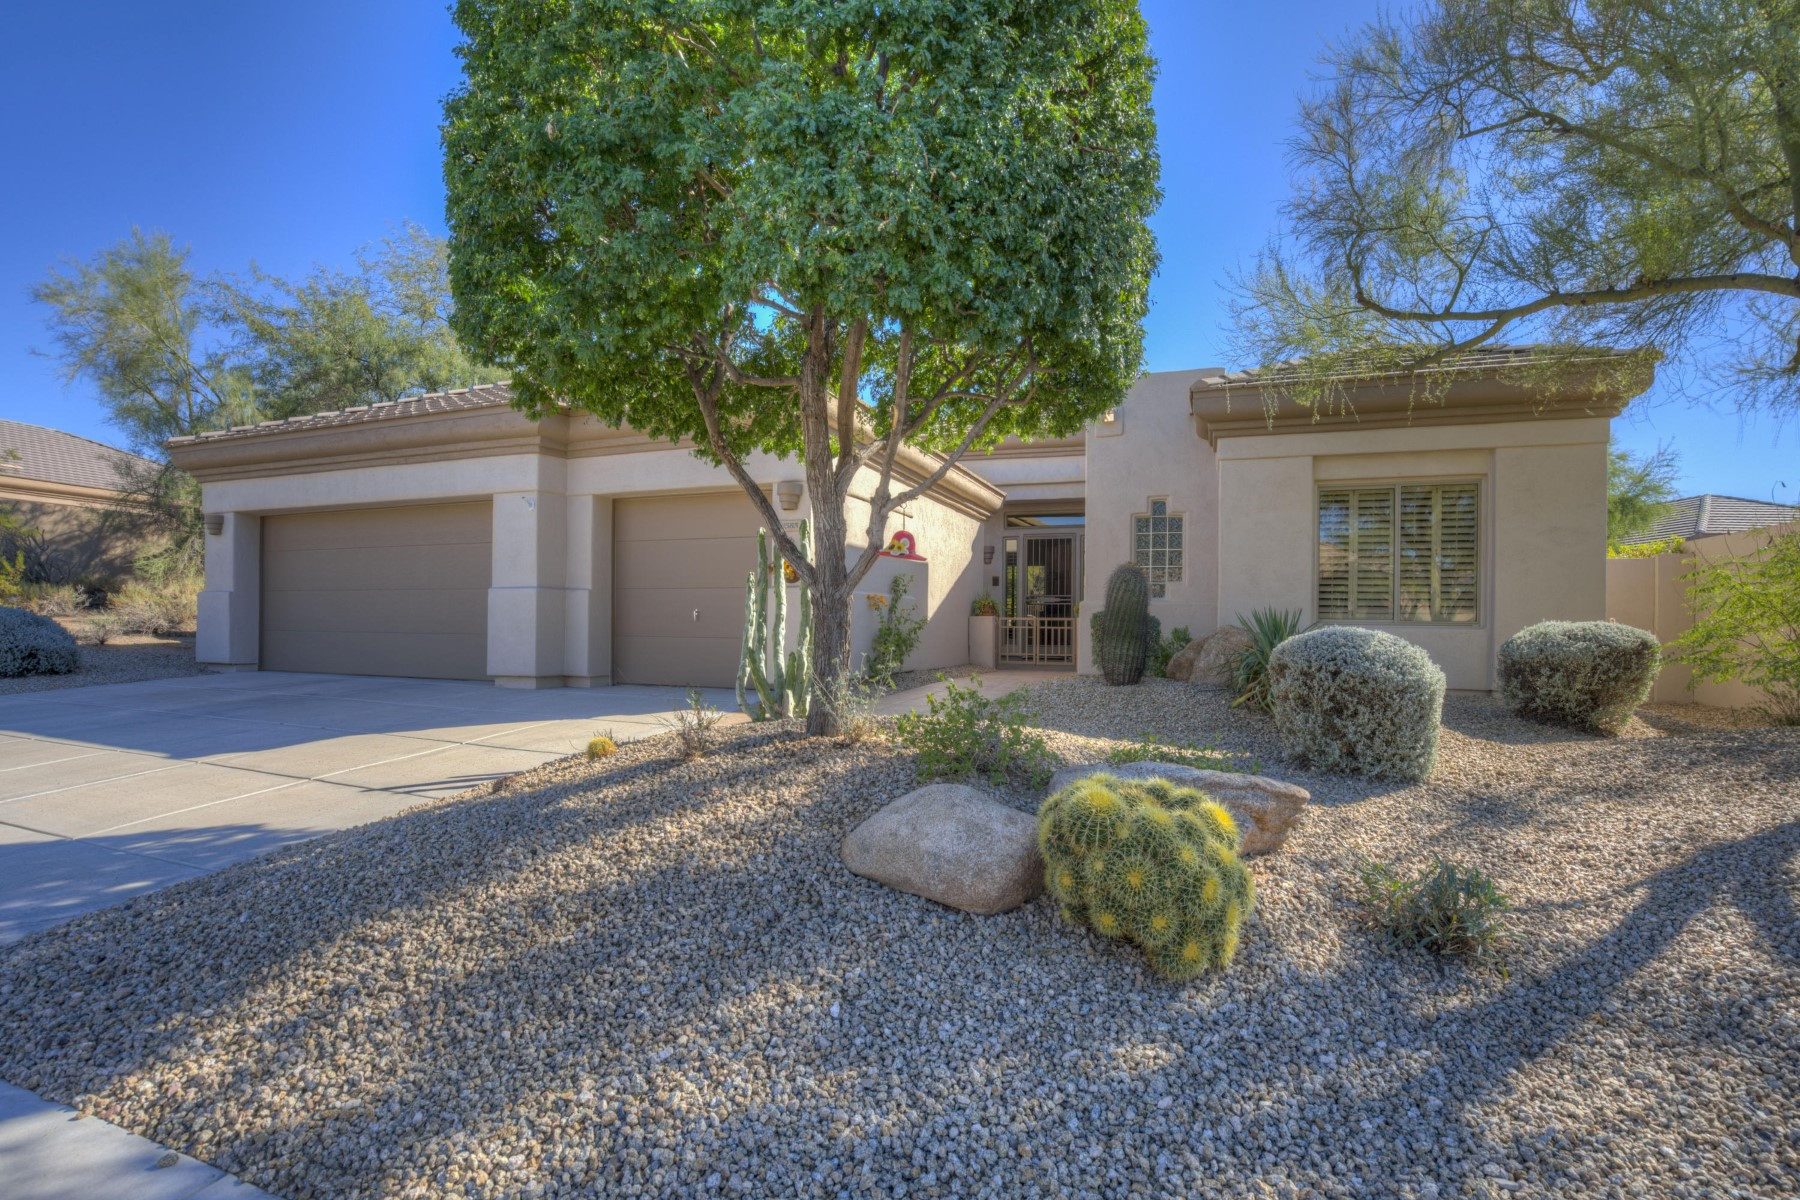 Single Family Home for Sale at Spacious sought after Stella model in Terravita Country Club 6583 E Brilliant Sky Dr Scottsdale, Arizona, 85266 United States